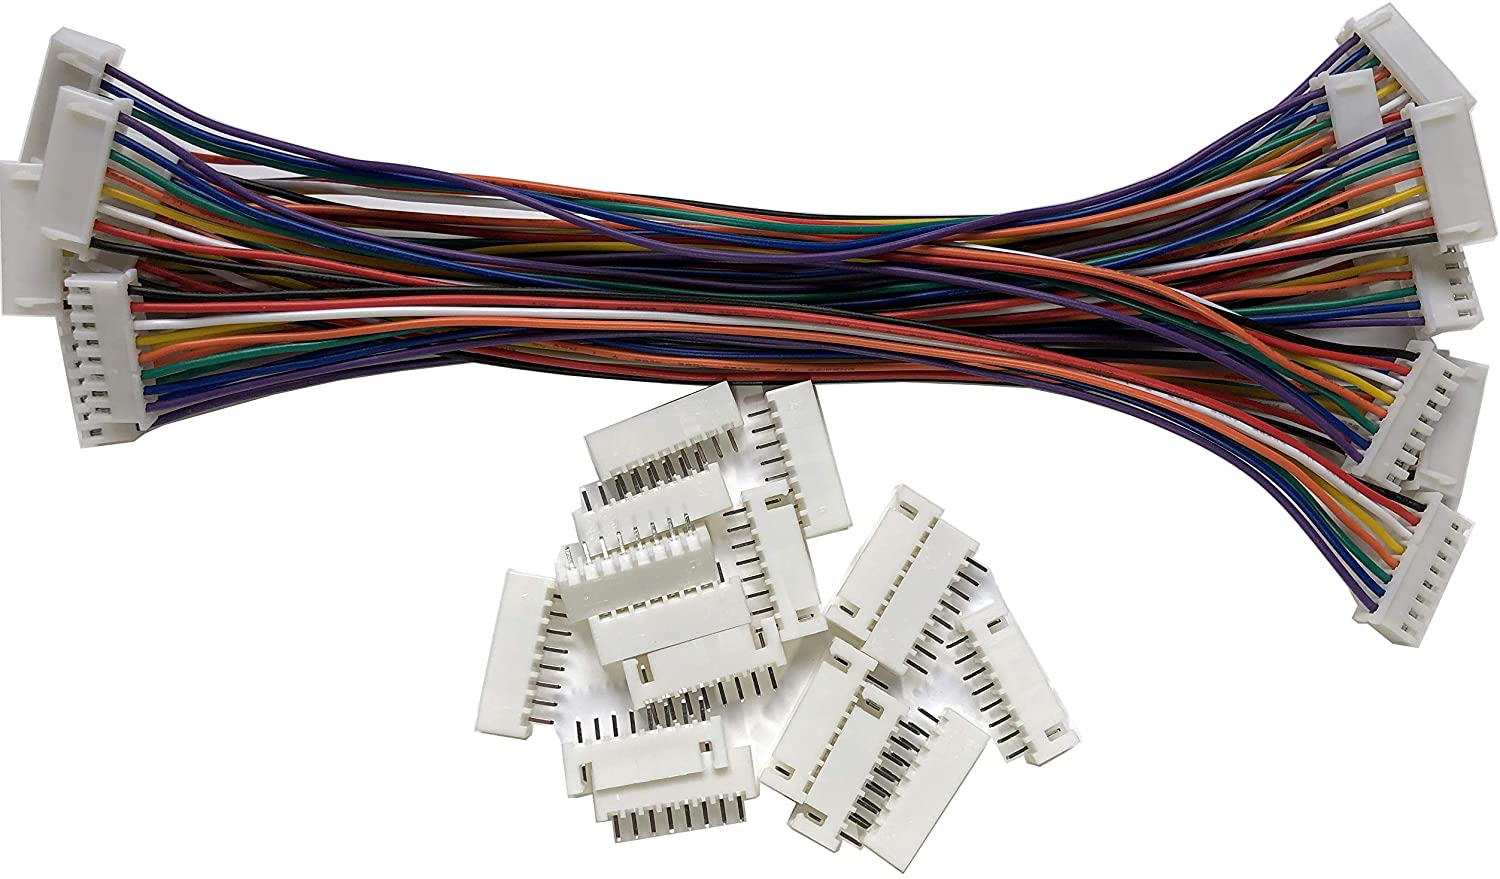 LATTECH 8 PCS 8 PIN JST XH Female Connector on One Side with Electric Wire 1007 26 AWG(Total Length:200MM) /& JST XH 8 PIN Male Connector 8 PCS